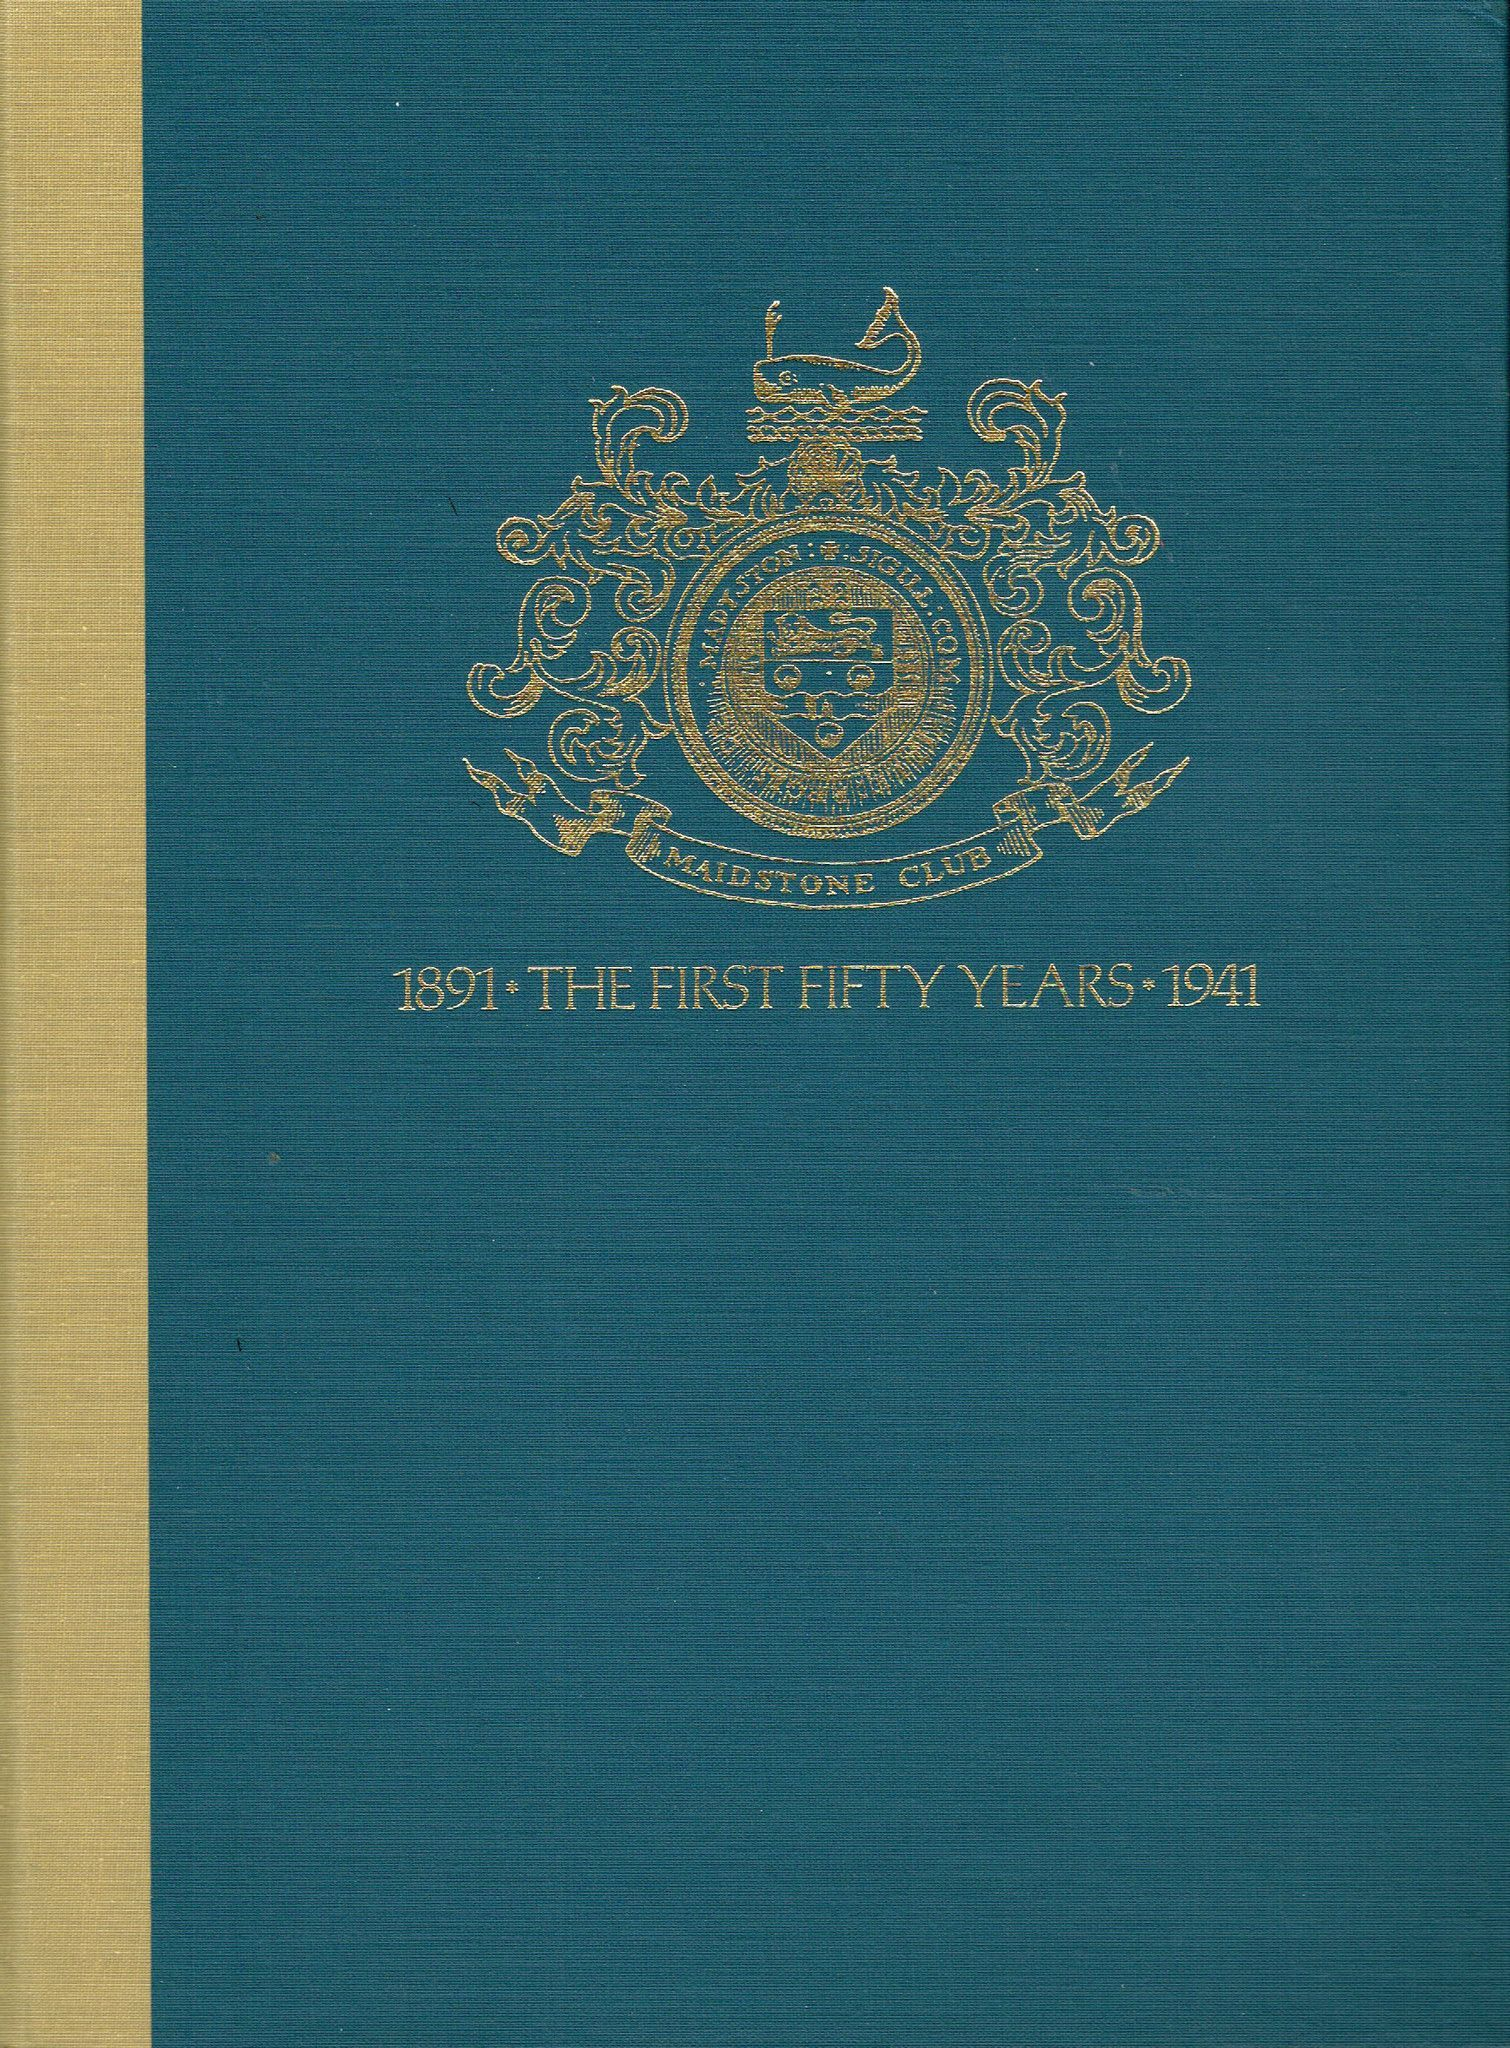 Maidstone Club: The First and Second Fifty Years 1891-1941/ 1941-1991